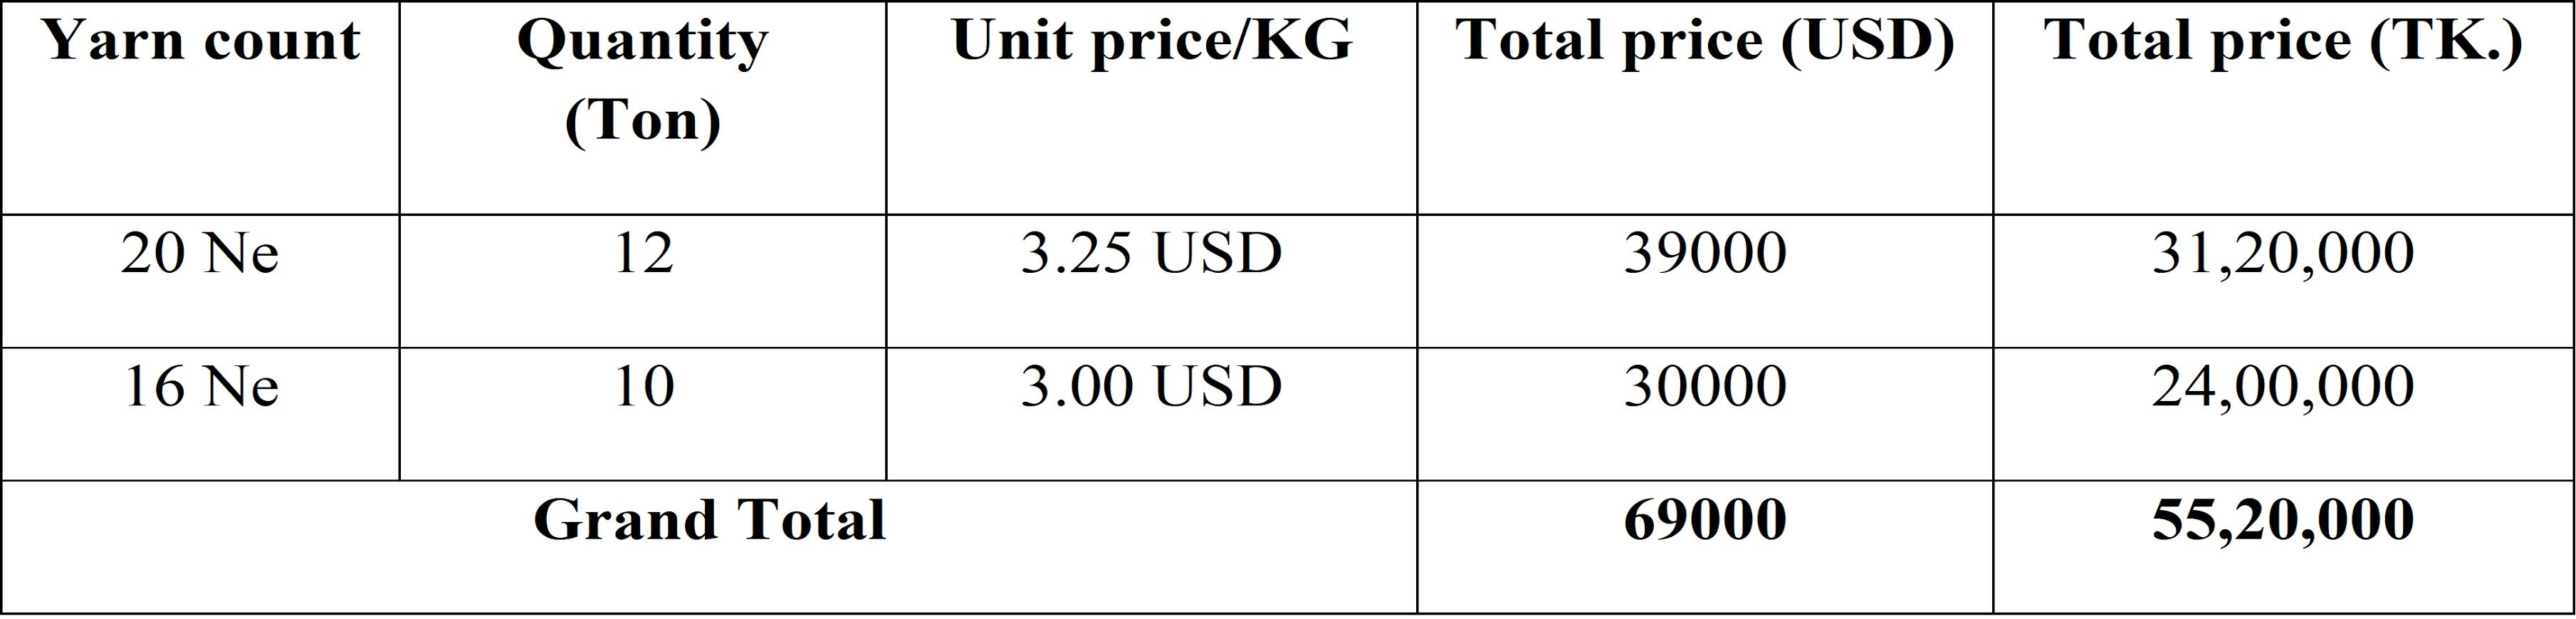 Raw material cost